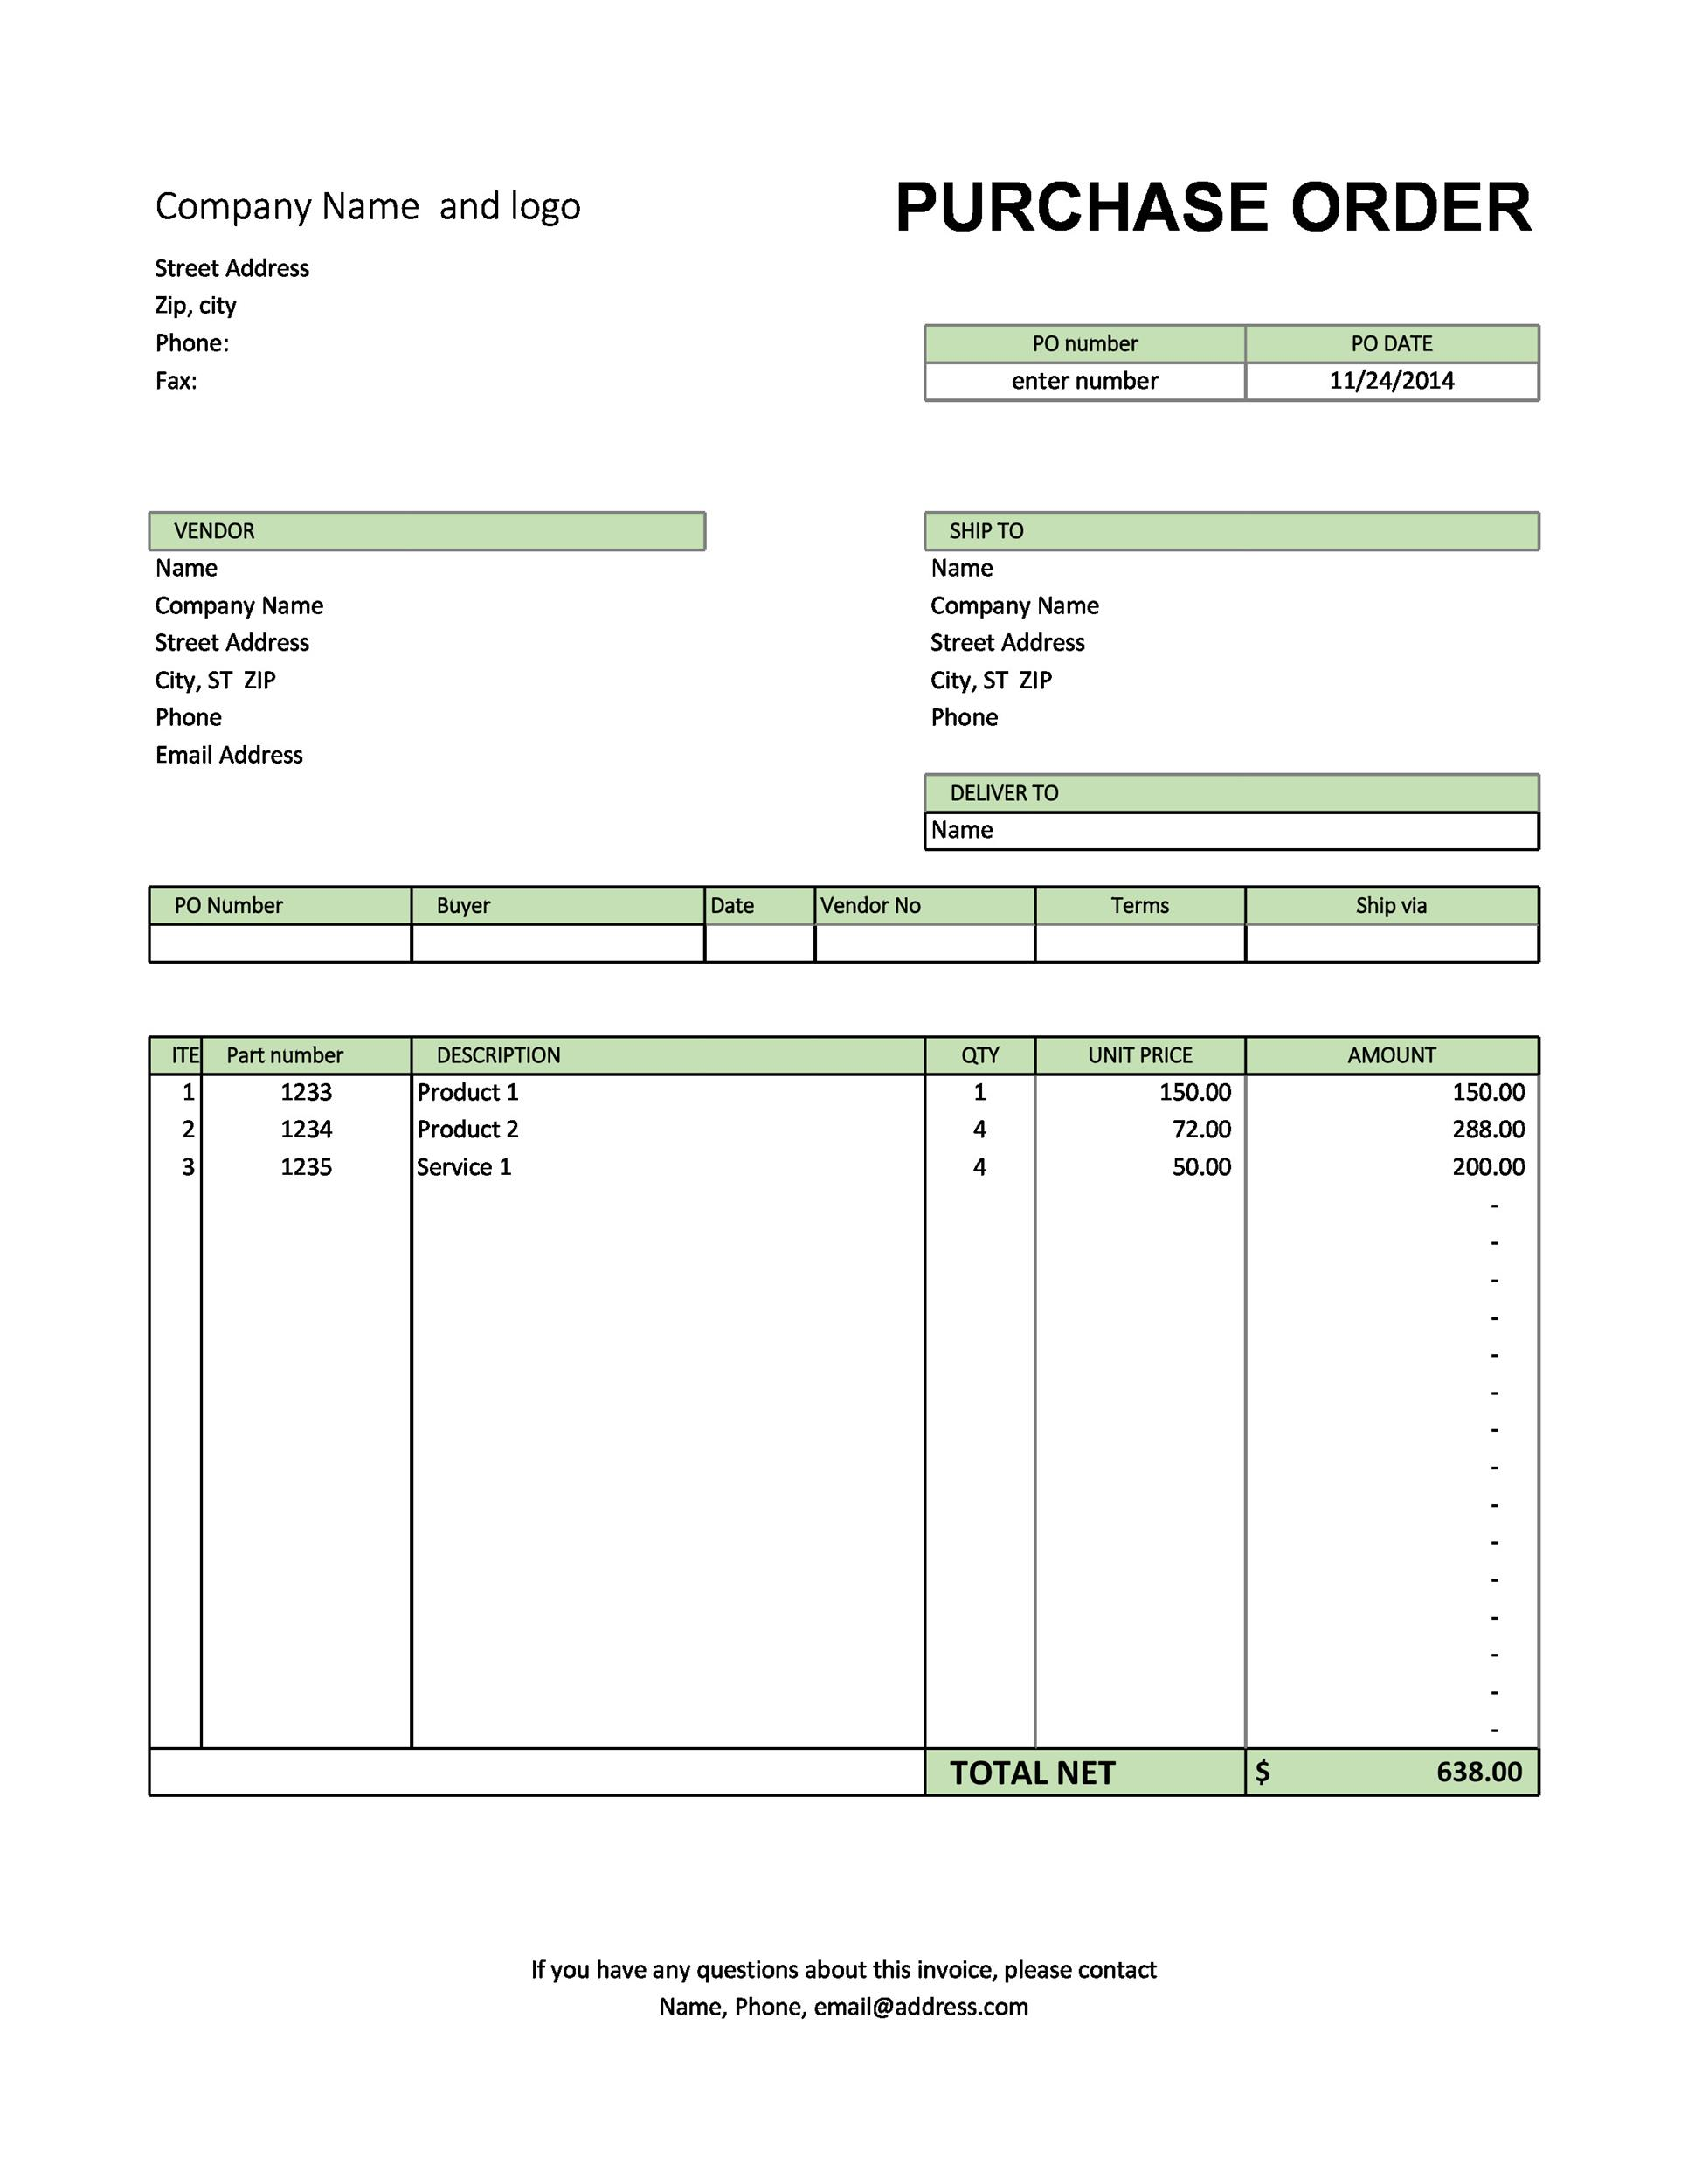 Free Purchase Order Templates - Word, Excel, Google Docs